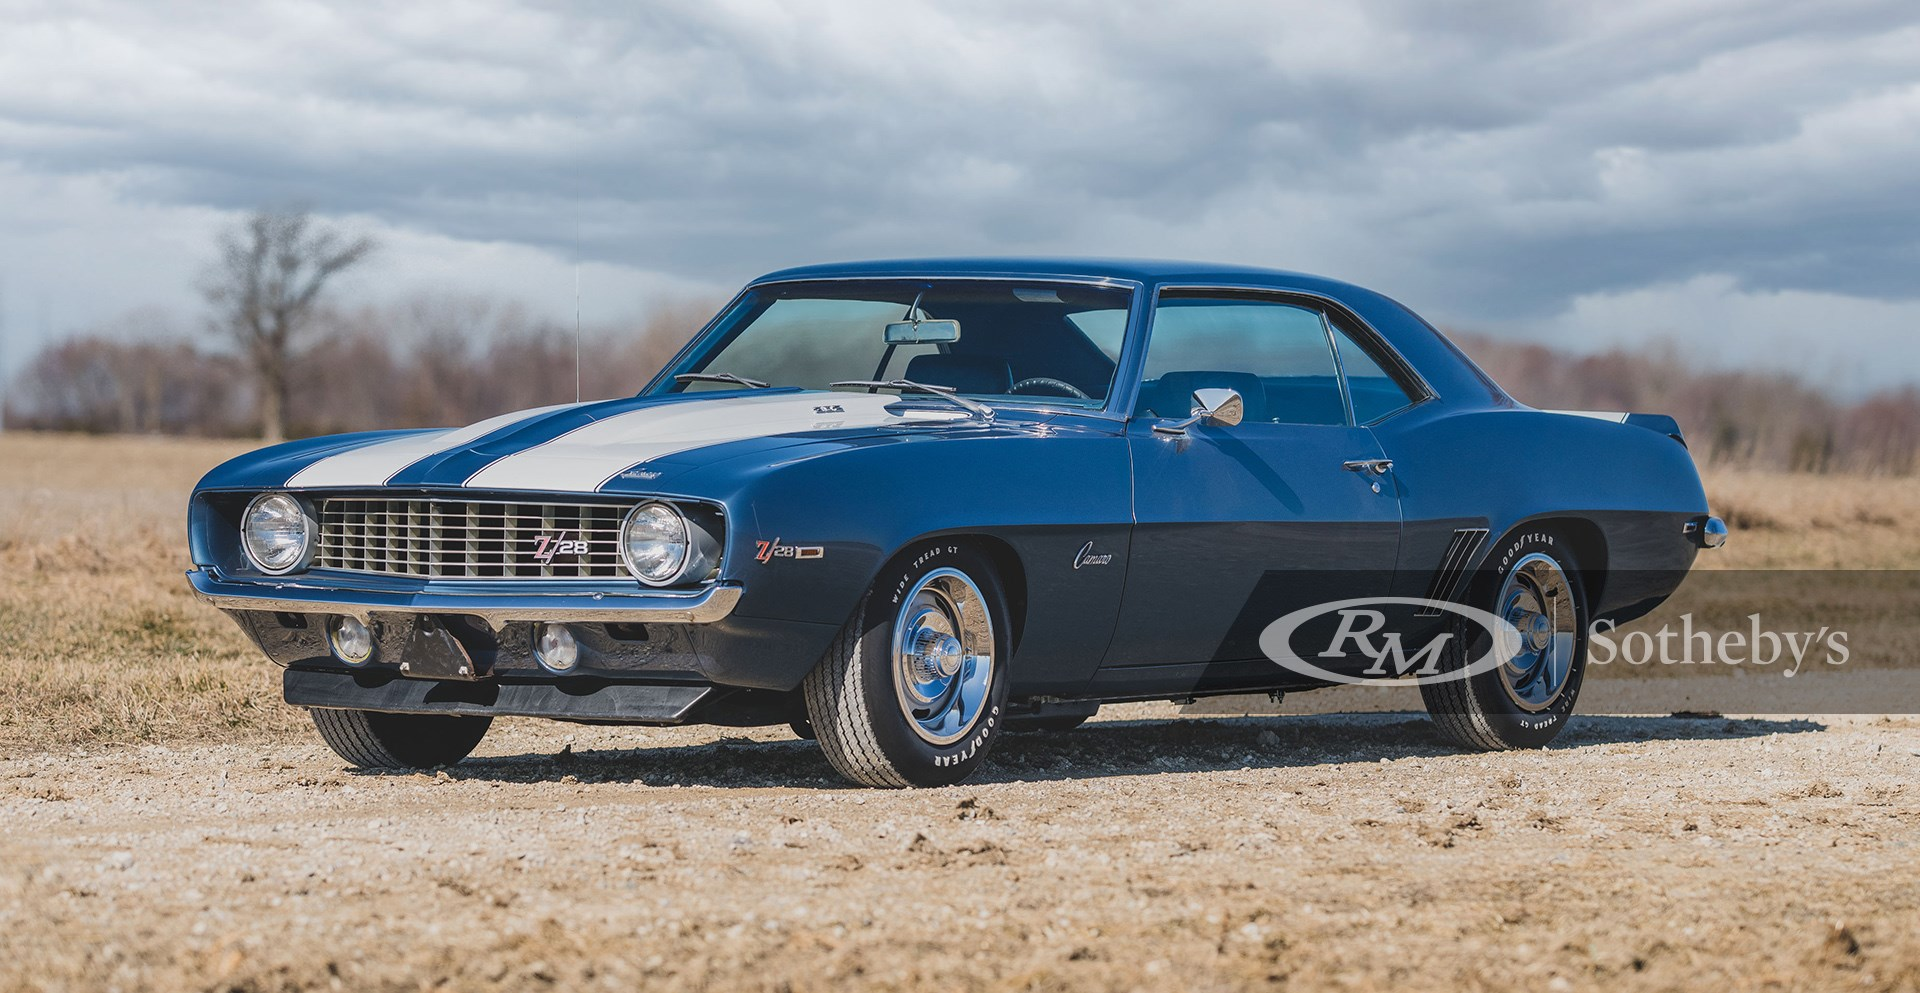 Dusk Blue 1969 Chevrolet Camaro Z28 available at RM Sotheby's Online Only Open Roads April Auction 2021